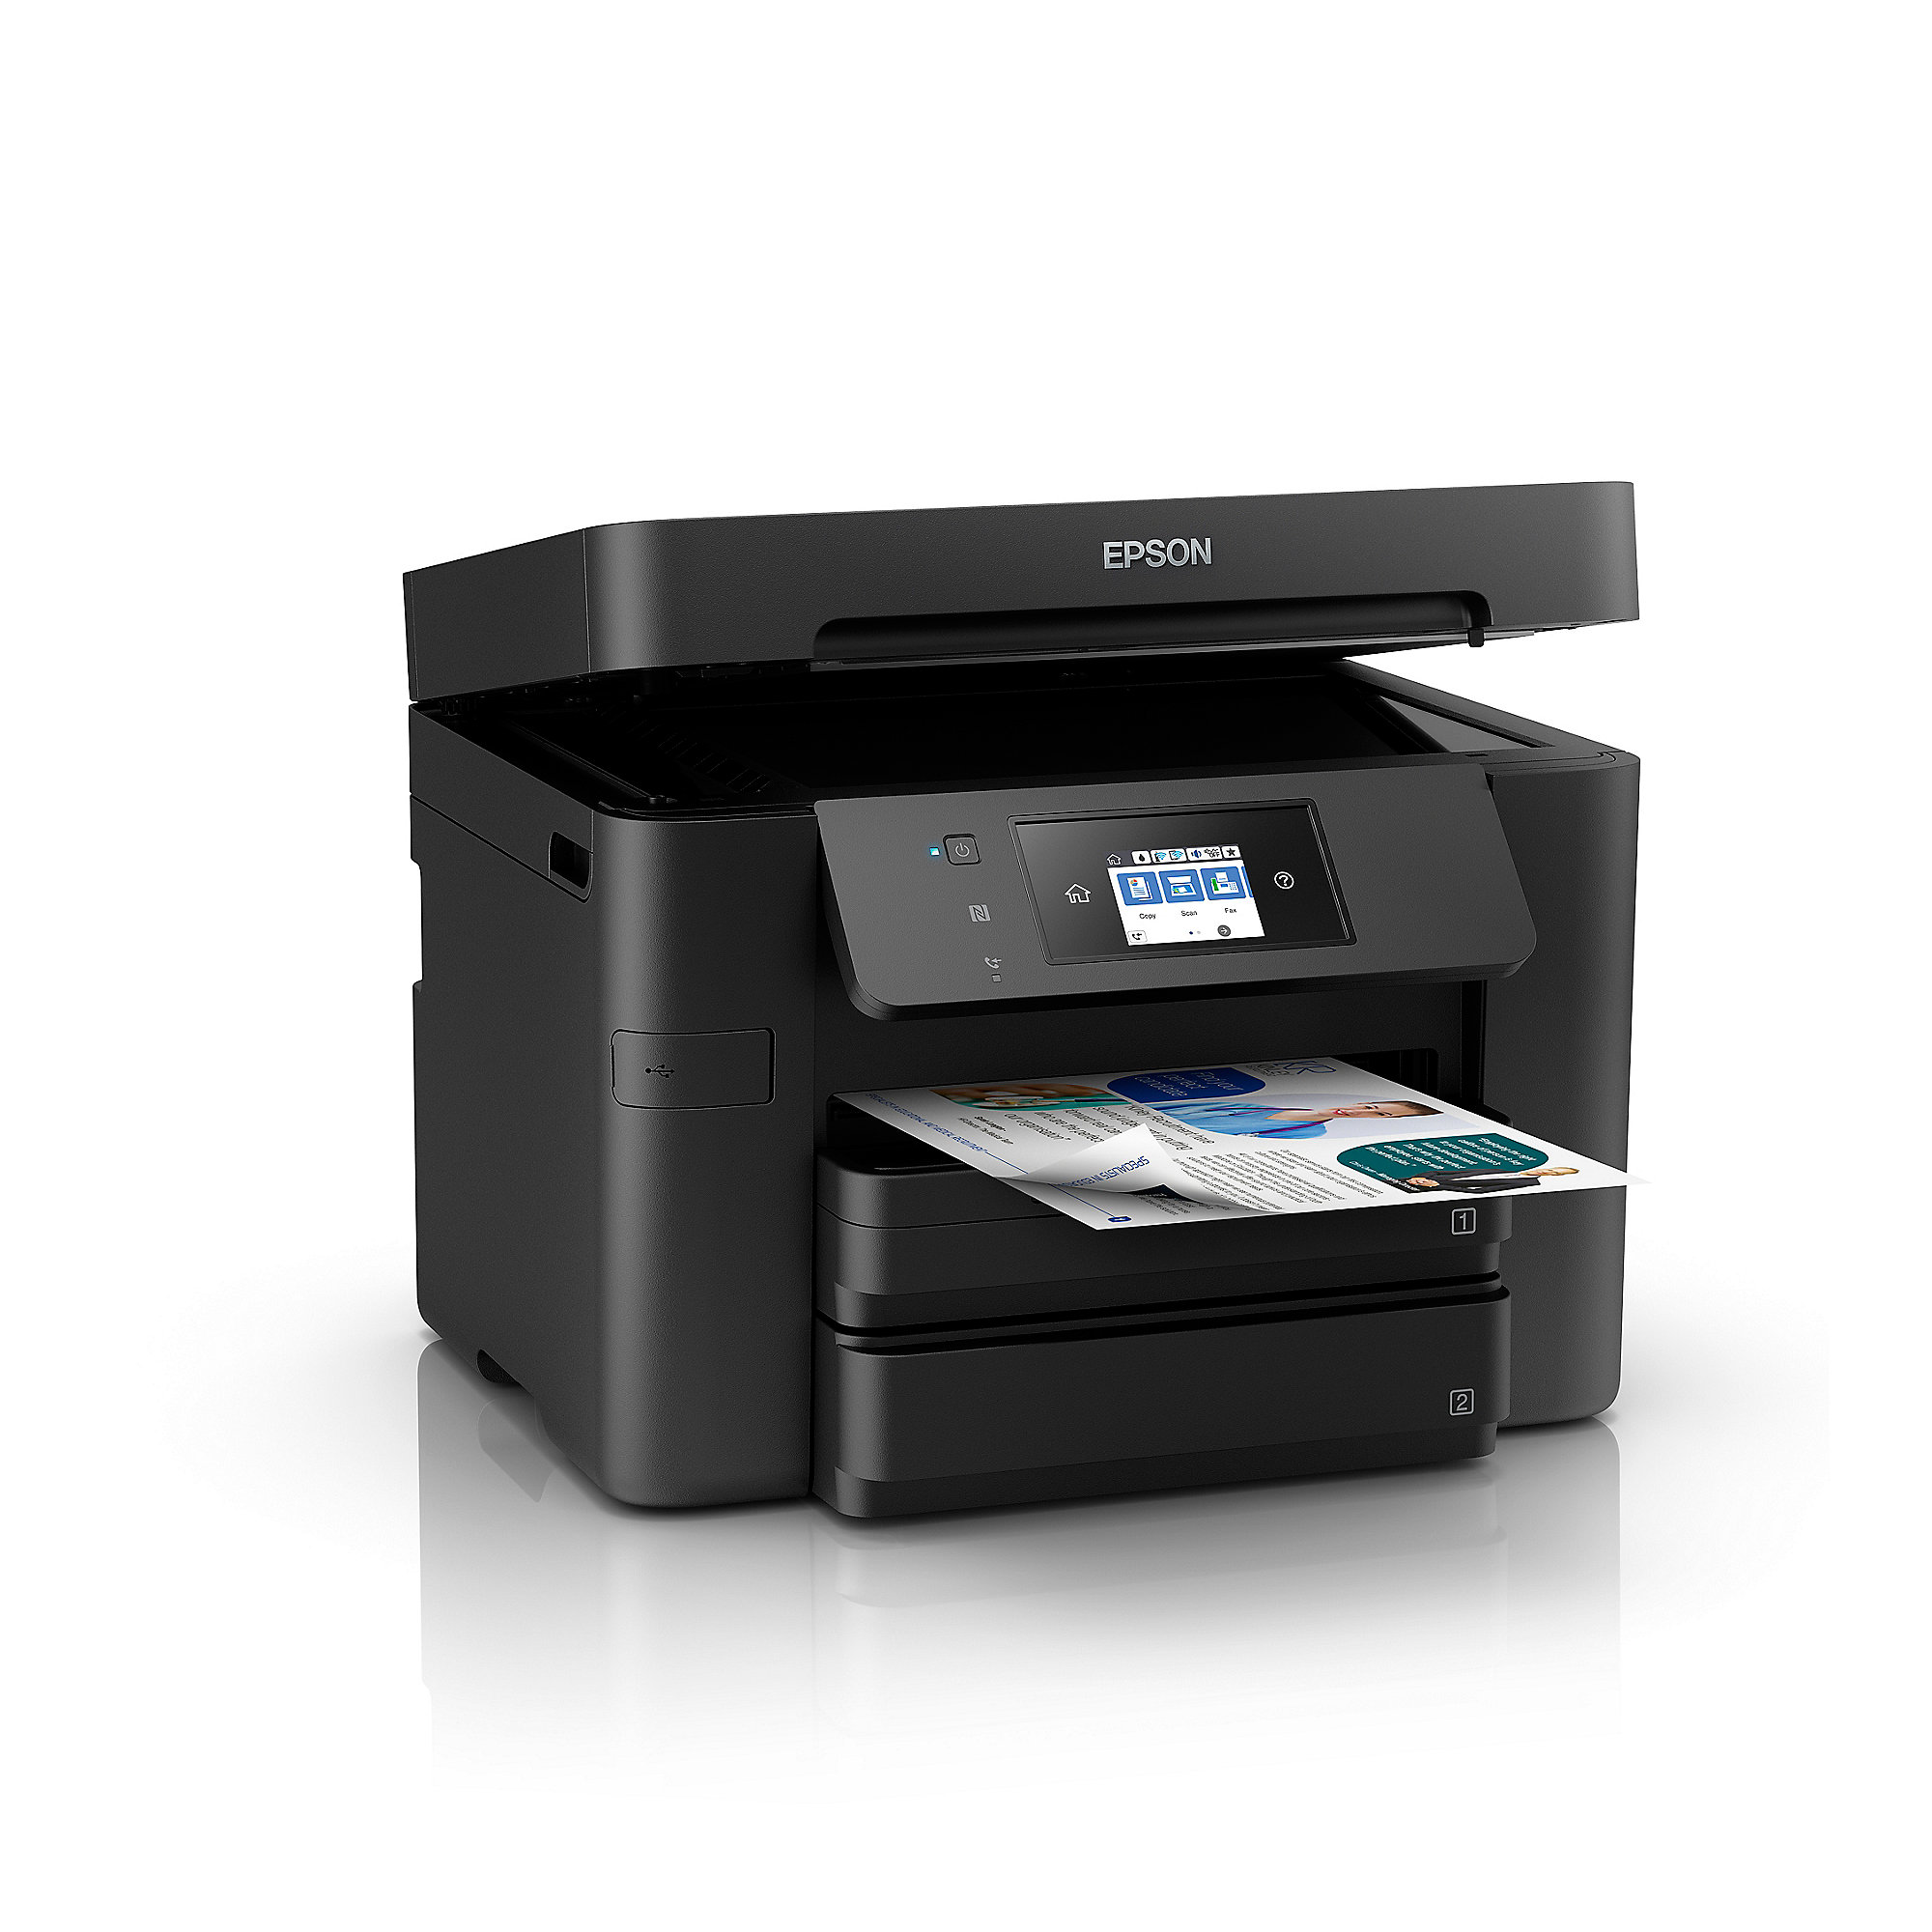 EPSON WorkForce Pro WF-4730DTWF Multifunktionsdrucker Scanner Kopierer Fax WLAN